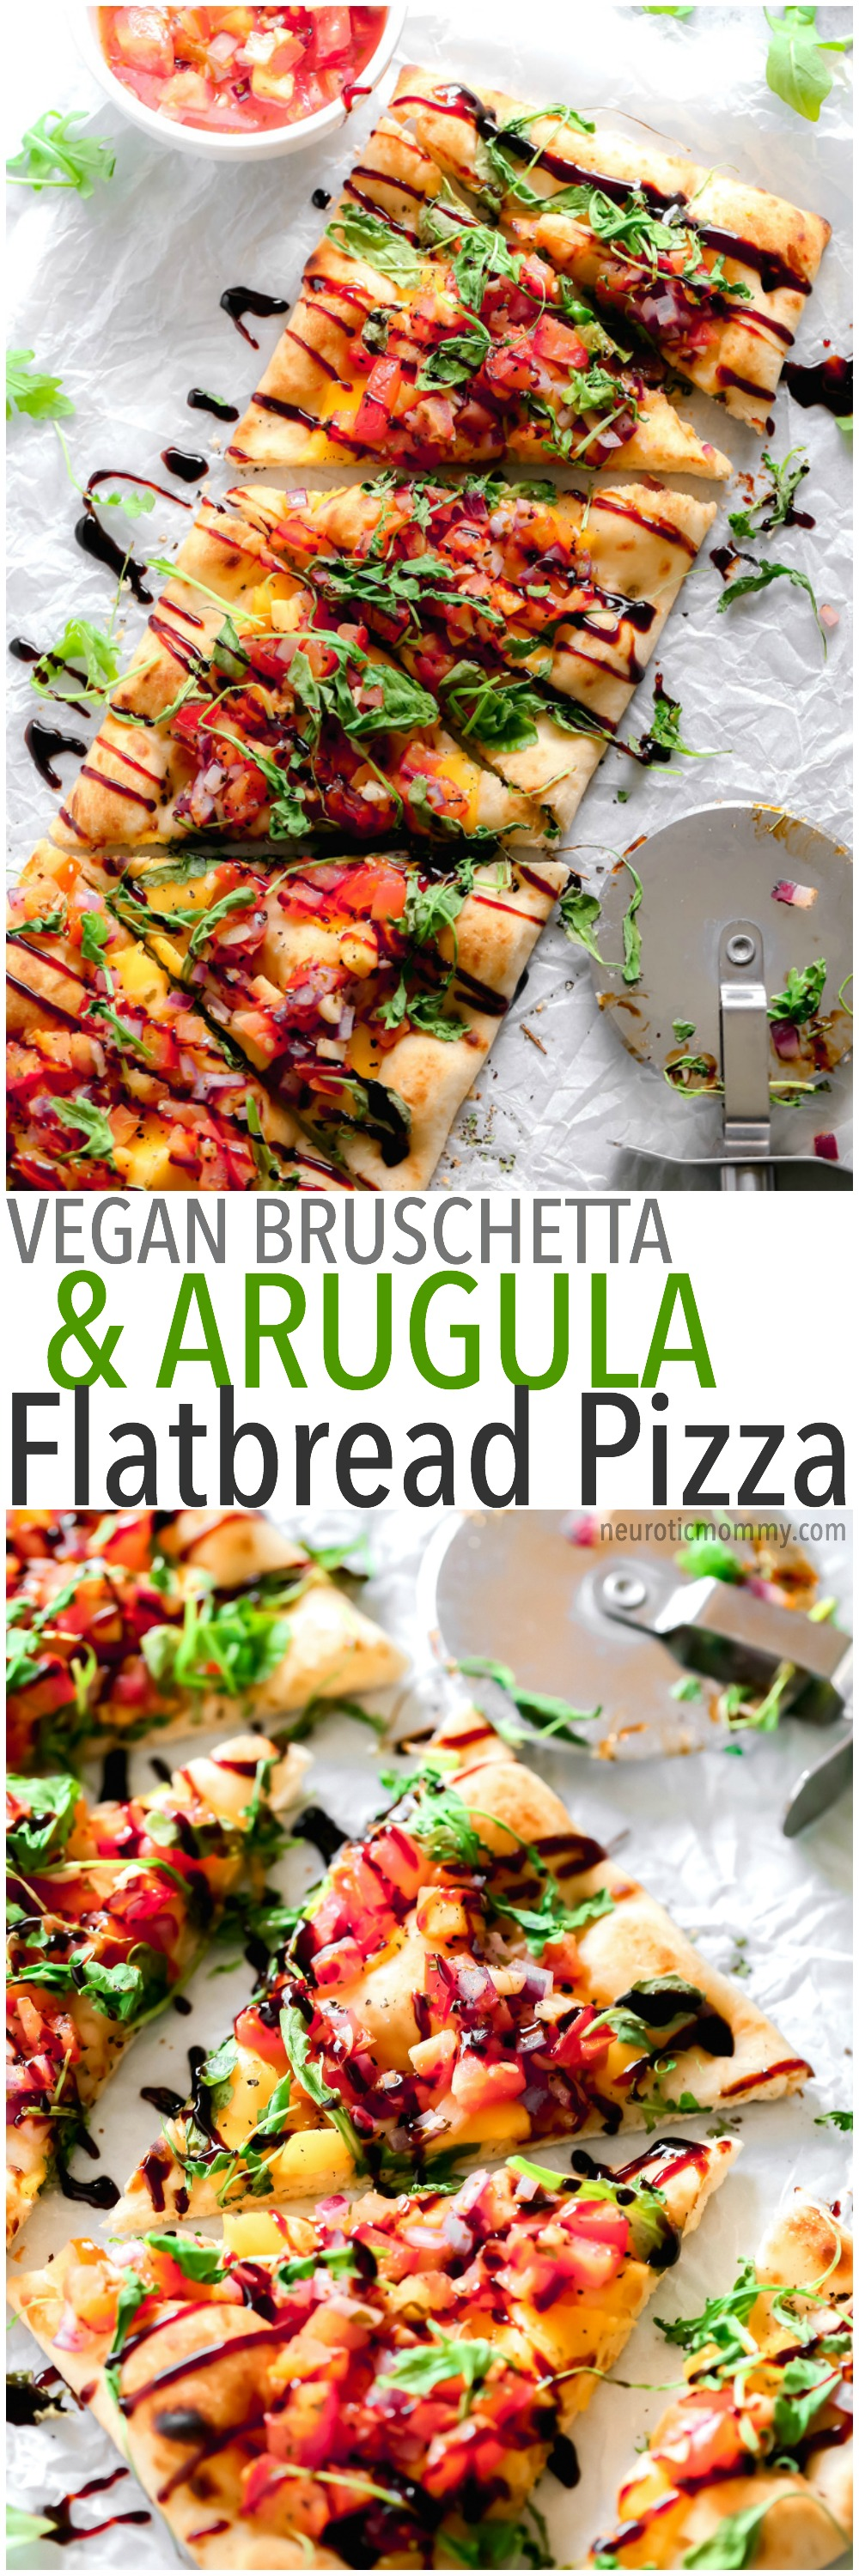 Vegan Bruschetta and Arugula Flatbread Pizza with a Balsamic glaze - Delicious easy recipe with immense flavor. Enjoy this homemade flatbread pizza using fresh bruschetta, arugula, vegan cheese, and a sweet balsamic glaze. NeuroticMommy.com #veganpizza